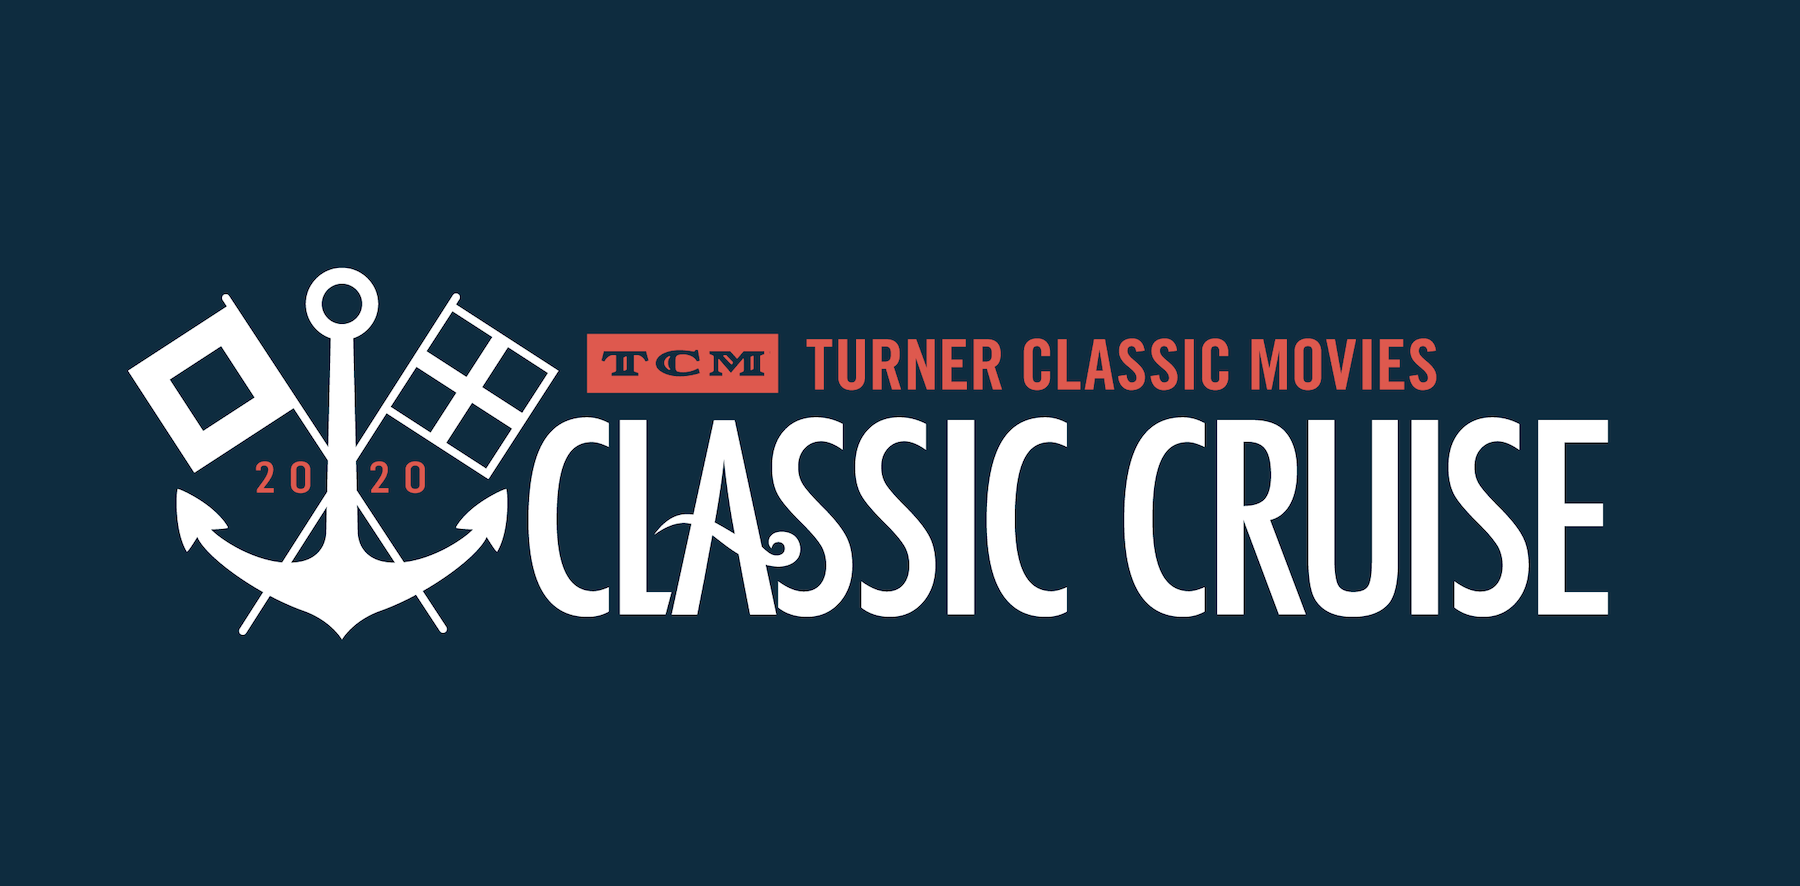 Tcm October 2020 Schedule Turner Classic Movies Brings Back the TCM Classic Cruise in 2020